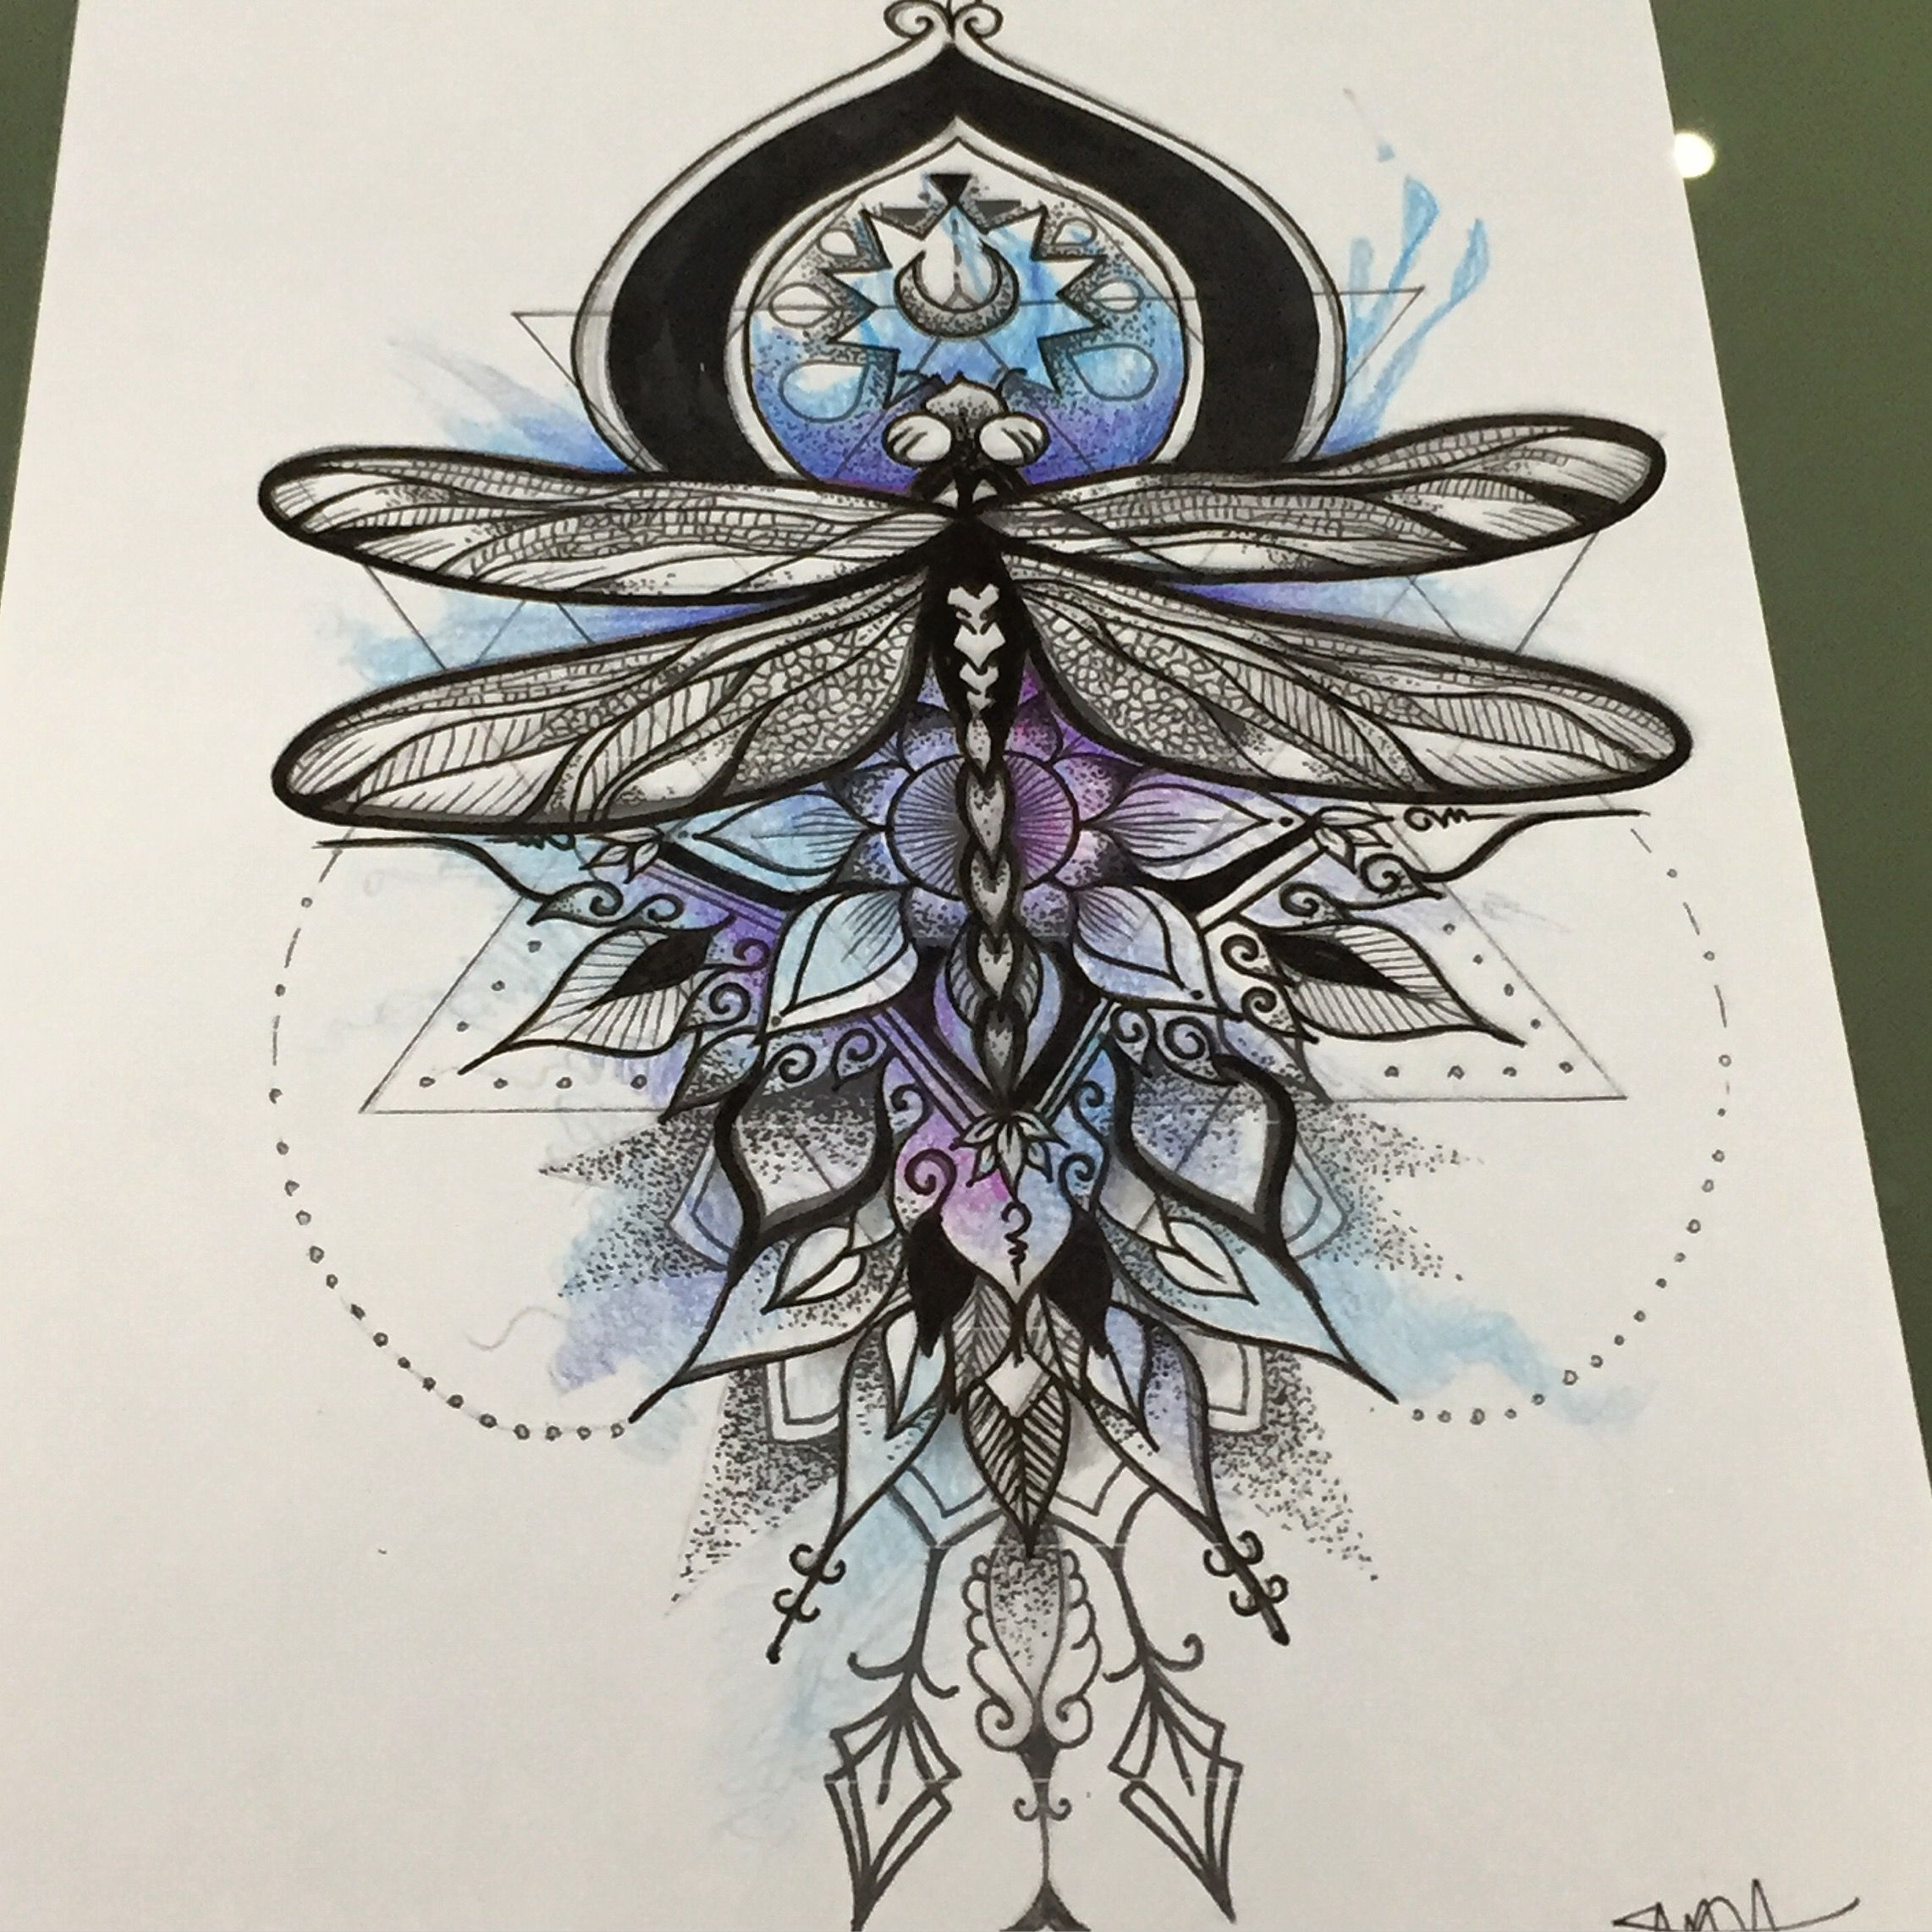 Amazing dragonfly skizze mandala and watercolor combination at